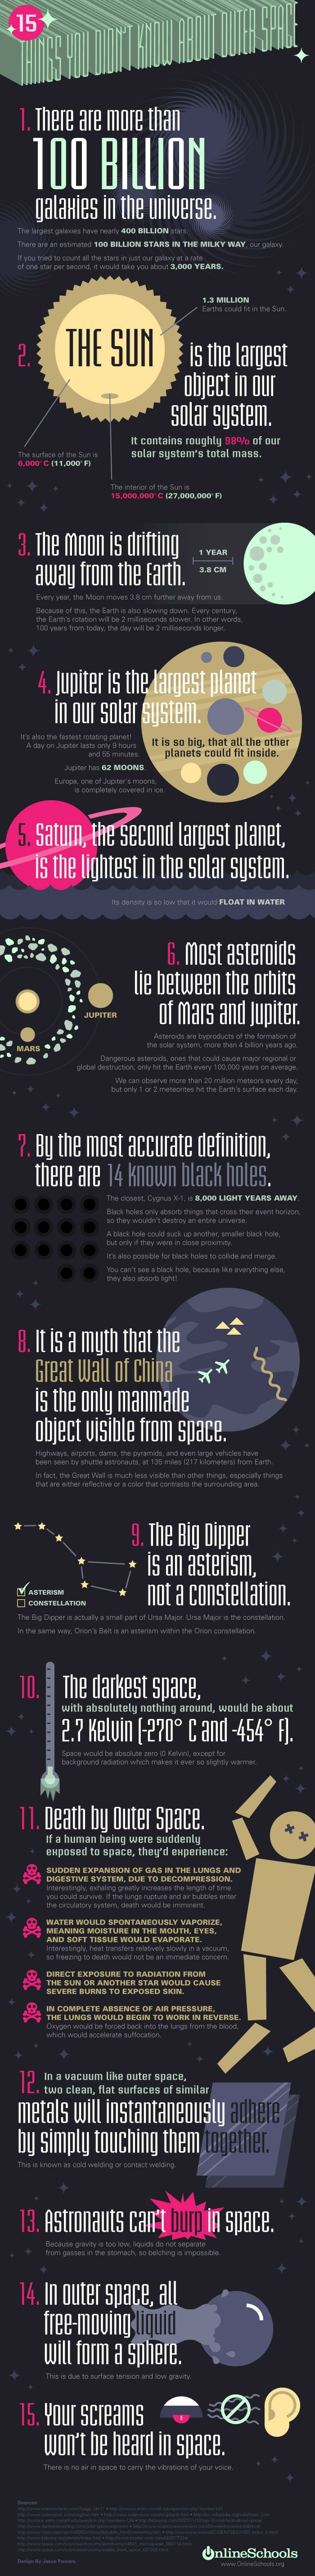 15 Things You Don't Know About Outer Space   #Infographic #Space